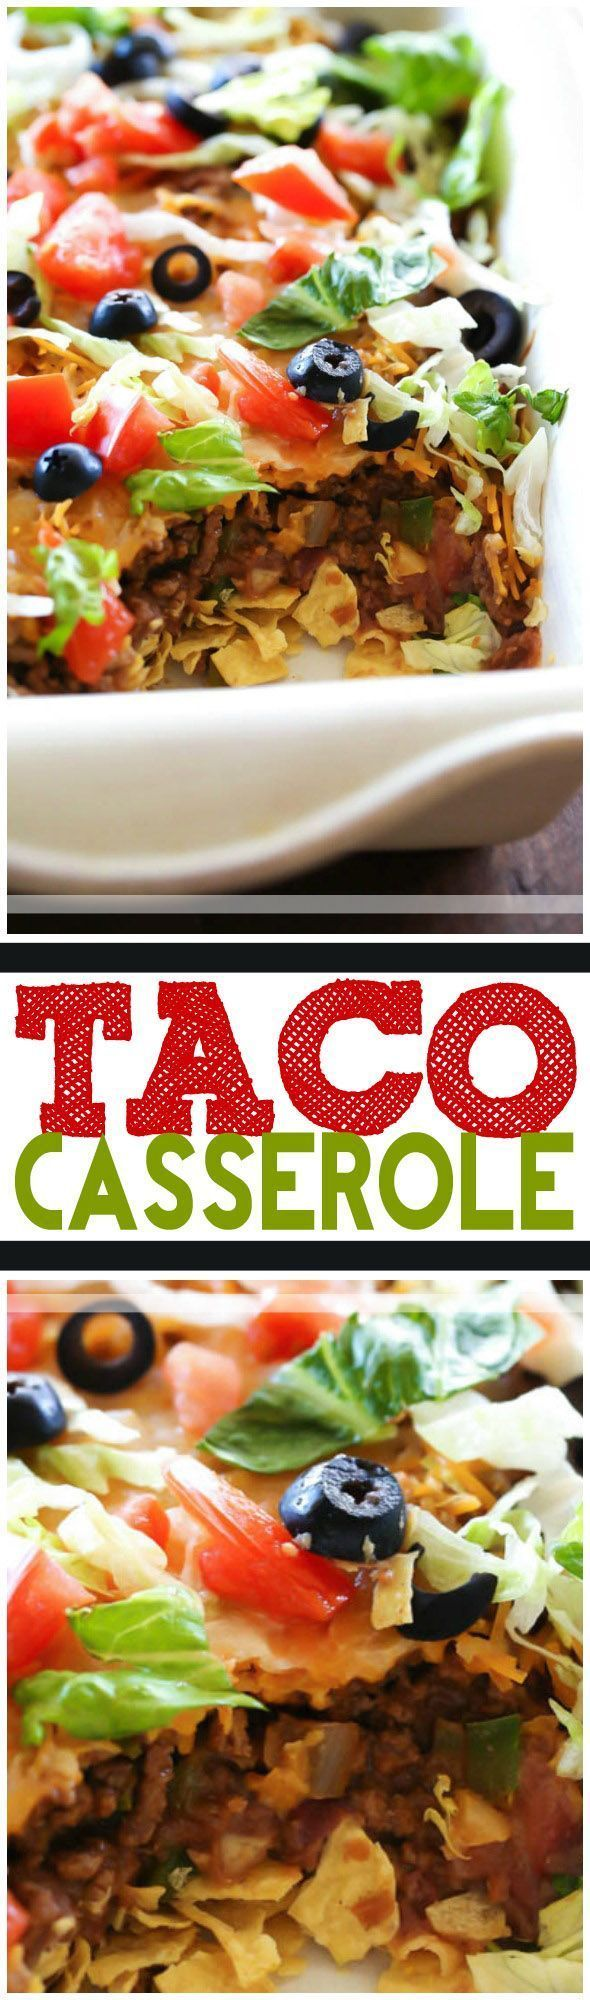 Taco Casserole... this is an easy and delicious dinner packed with incredible flavors and ingredients that your family will LOVE!